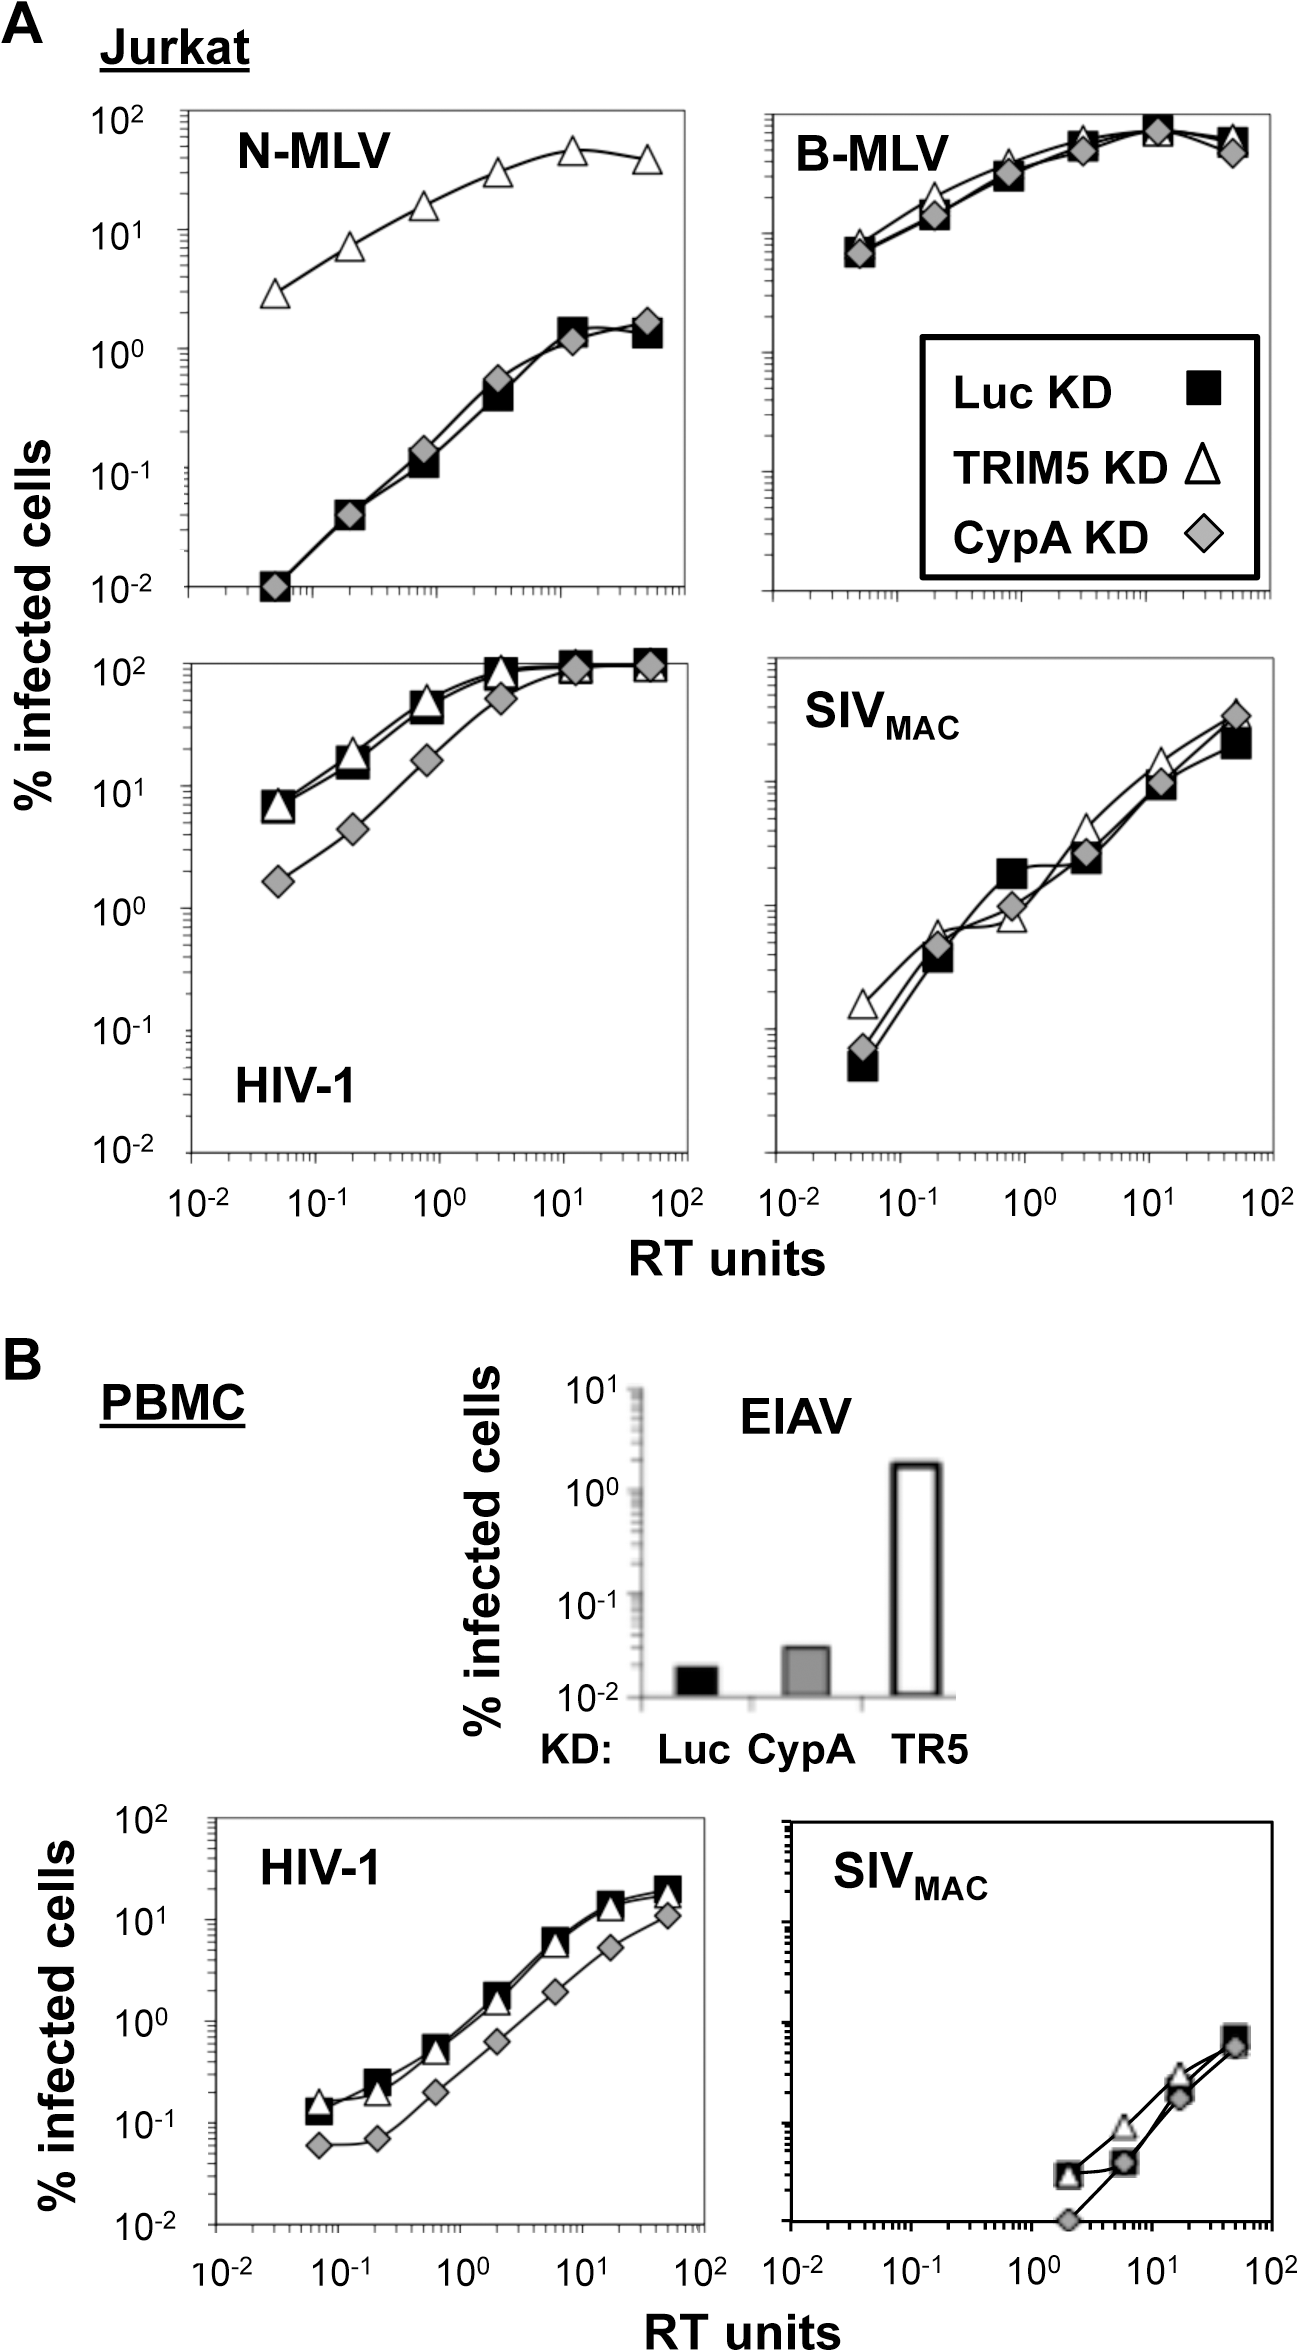 Knockdown of TRIM5 or of cyclophilin A has no effect on SIV<sub>MAC</sub> transduction of Jurkat CD4<sup>+</sup> T cells.